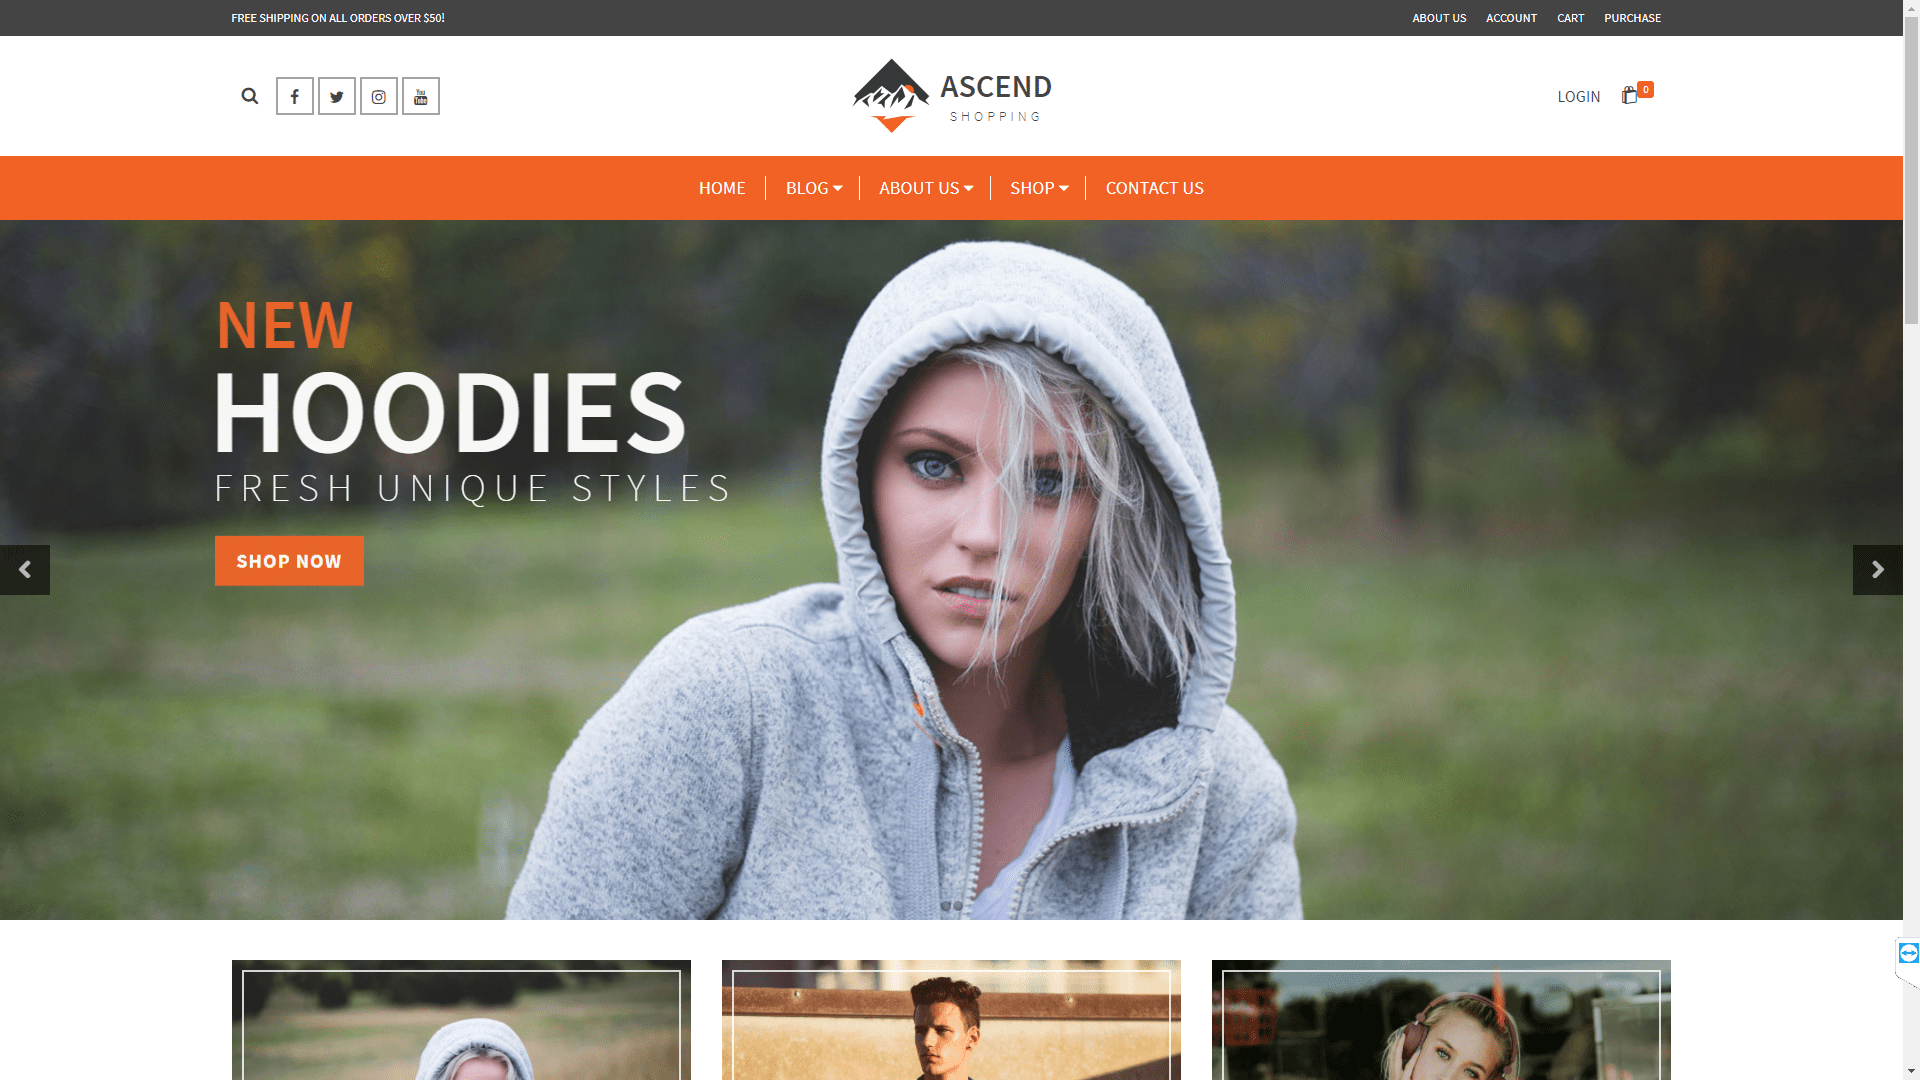 Web Design - Ascend Shopping - Denver CO